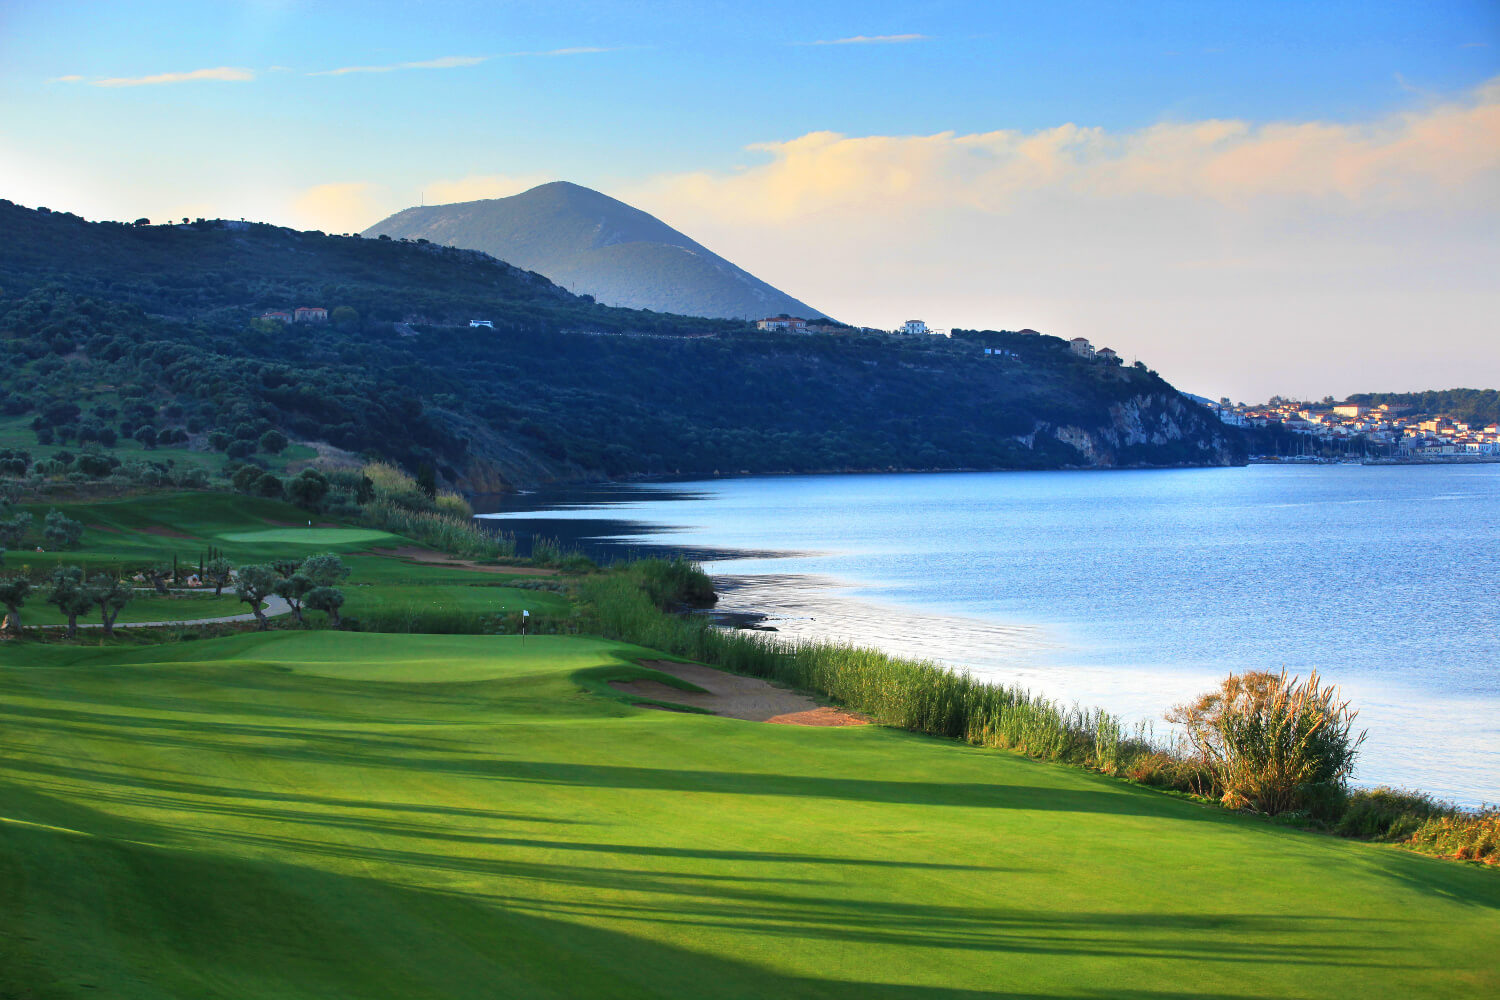 Messinia Pro-Am: the 3rd edition of the annual golf tournament takes place in Costa Navarino